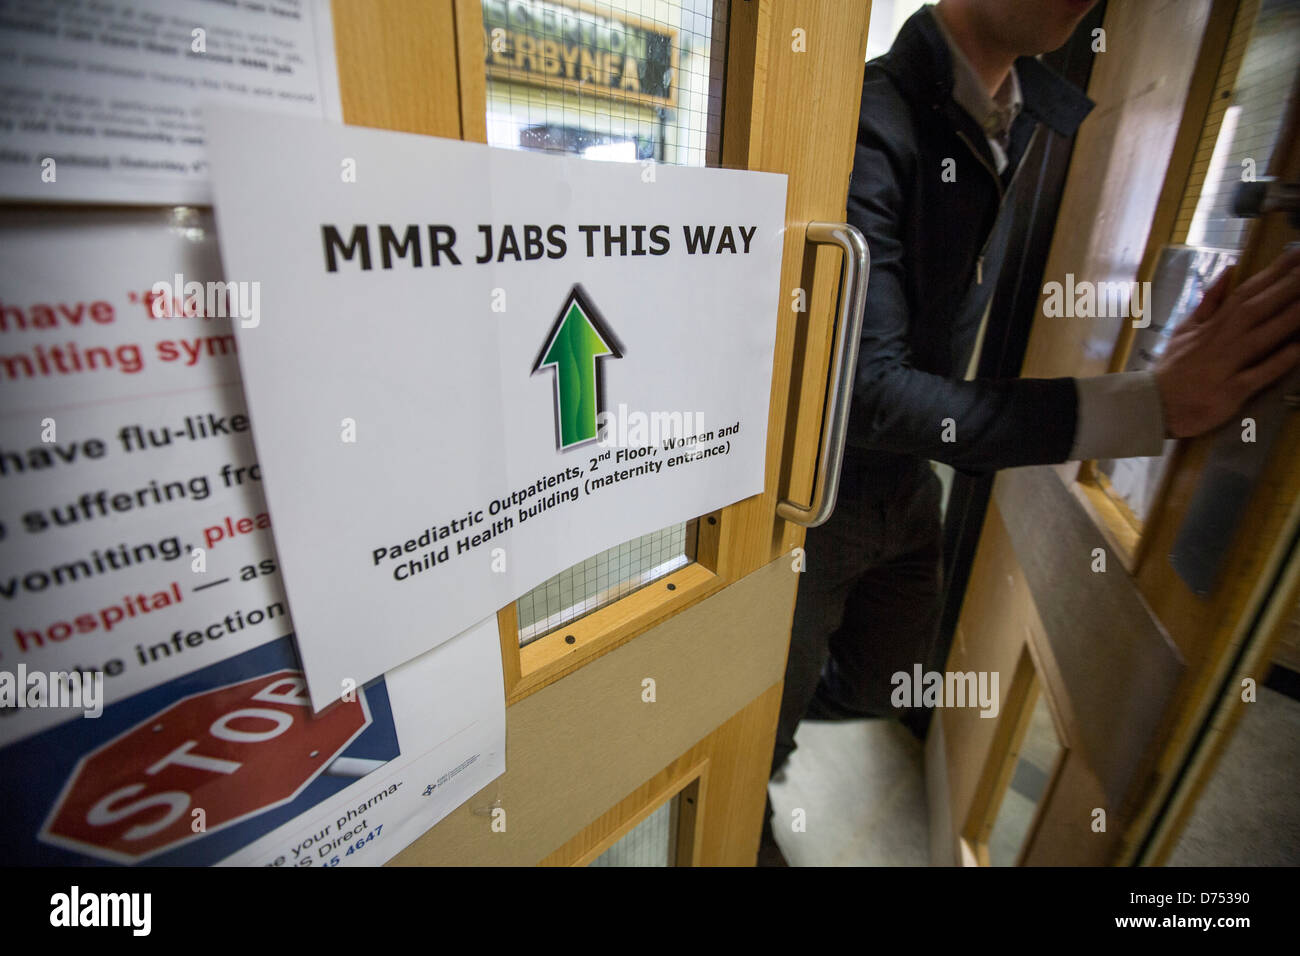 Signs pointing the way to MMR inoculation Jabs at Singleton Hospital, Swansea. - Stock Image